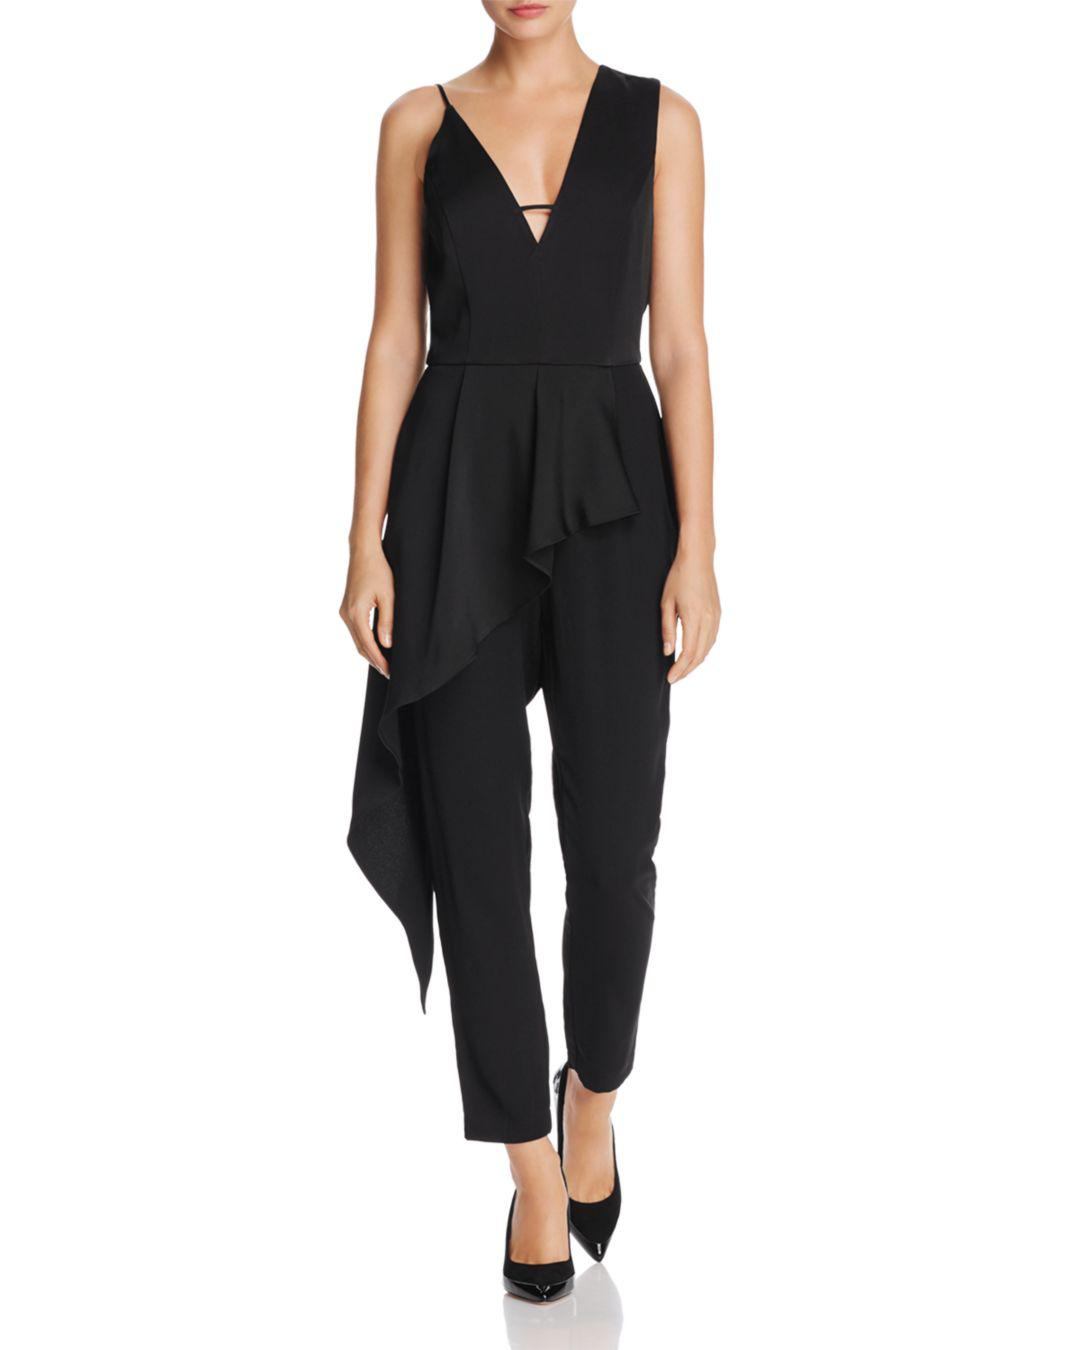 4bdd97f0e00 Gallery. Previously sold at  Bloomingdale s · Women s Black Jumpsuits